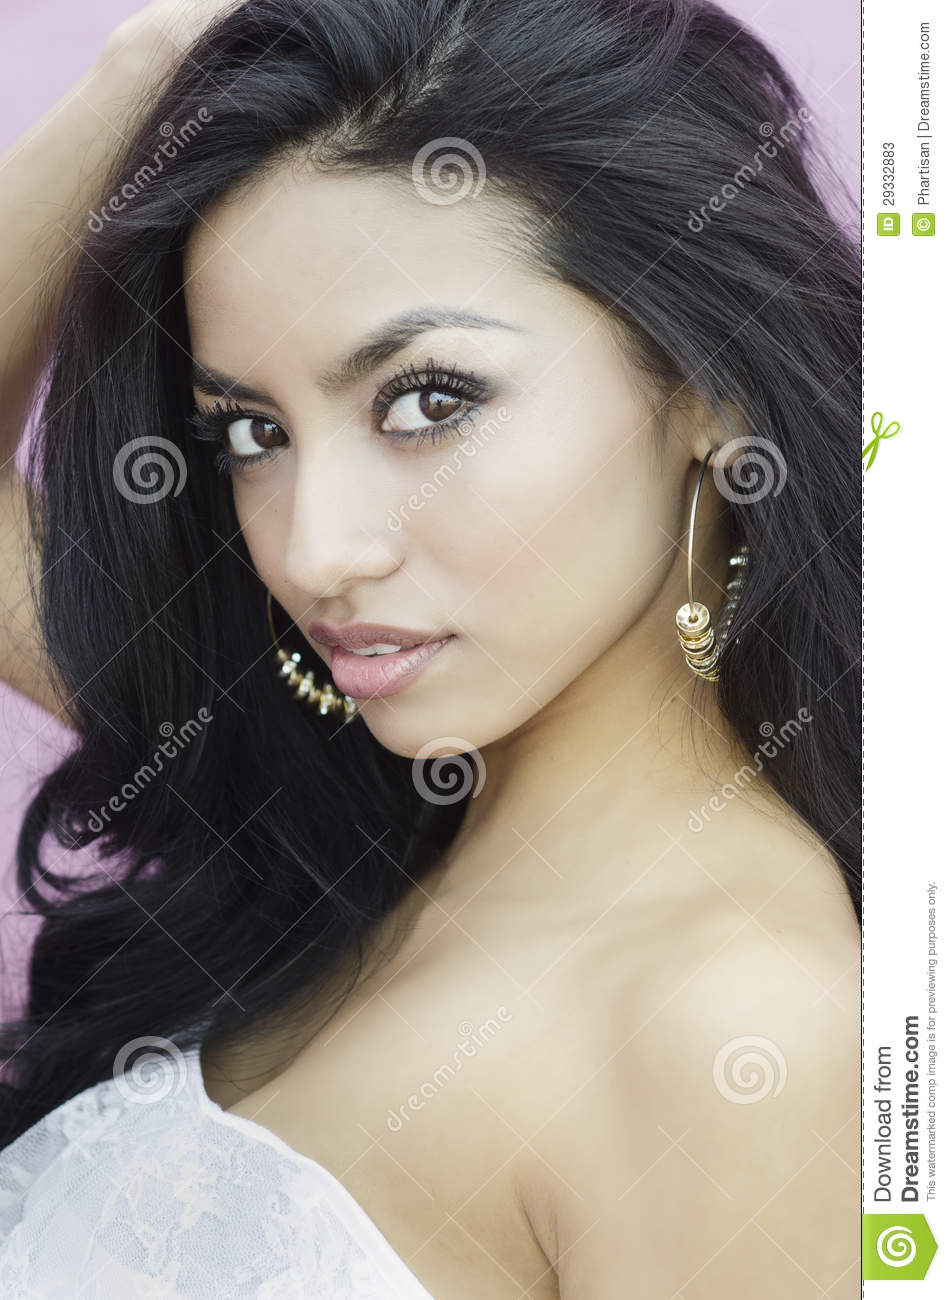 Beautiful Exotic Young Woman Stock Photos - Image: 29332883